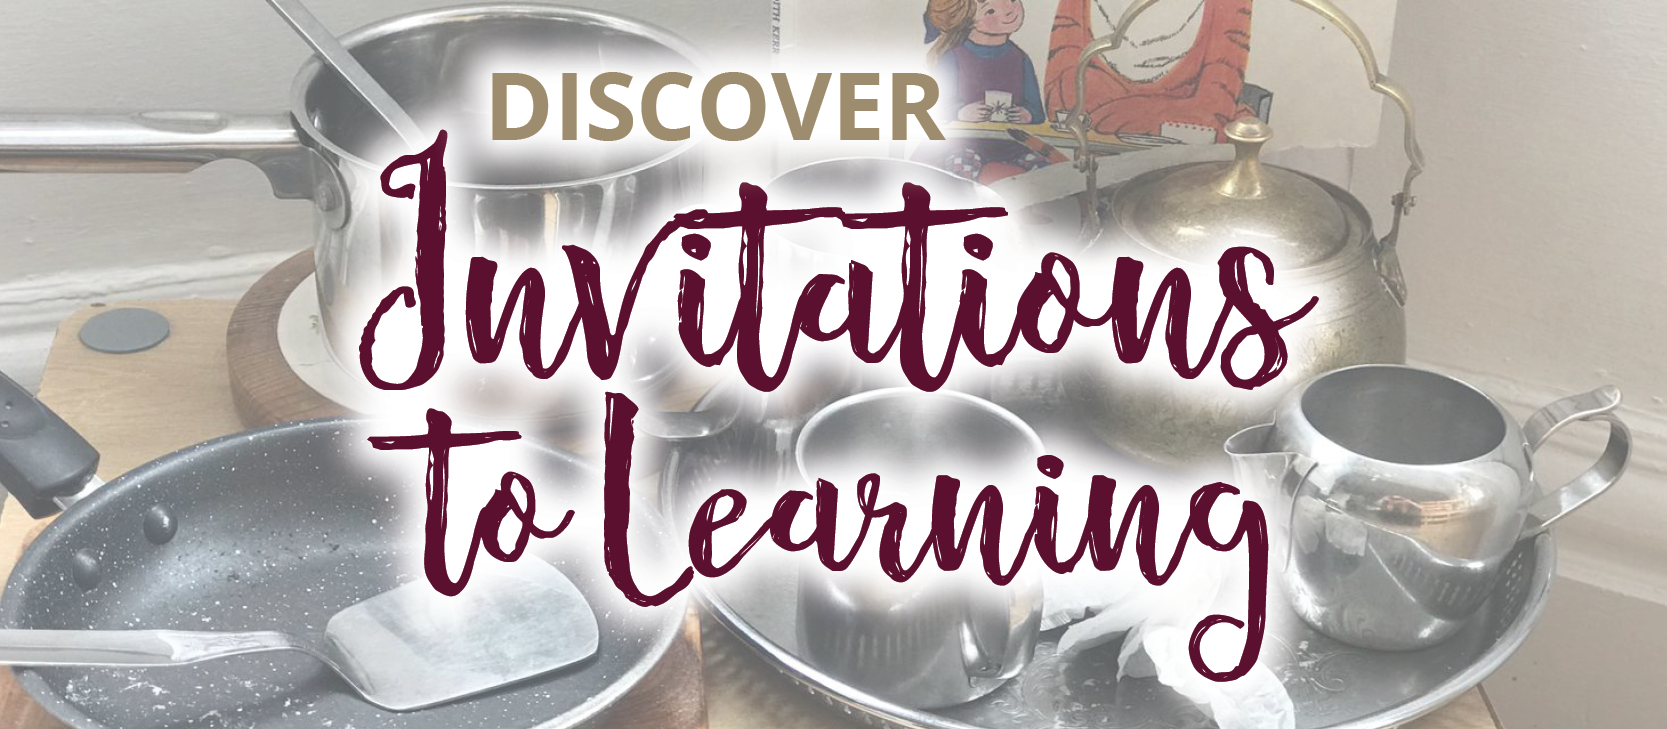 Northamptonshire - Invitations to Learning - 11/12/2021